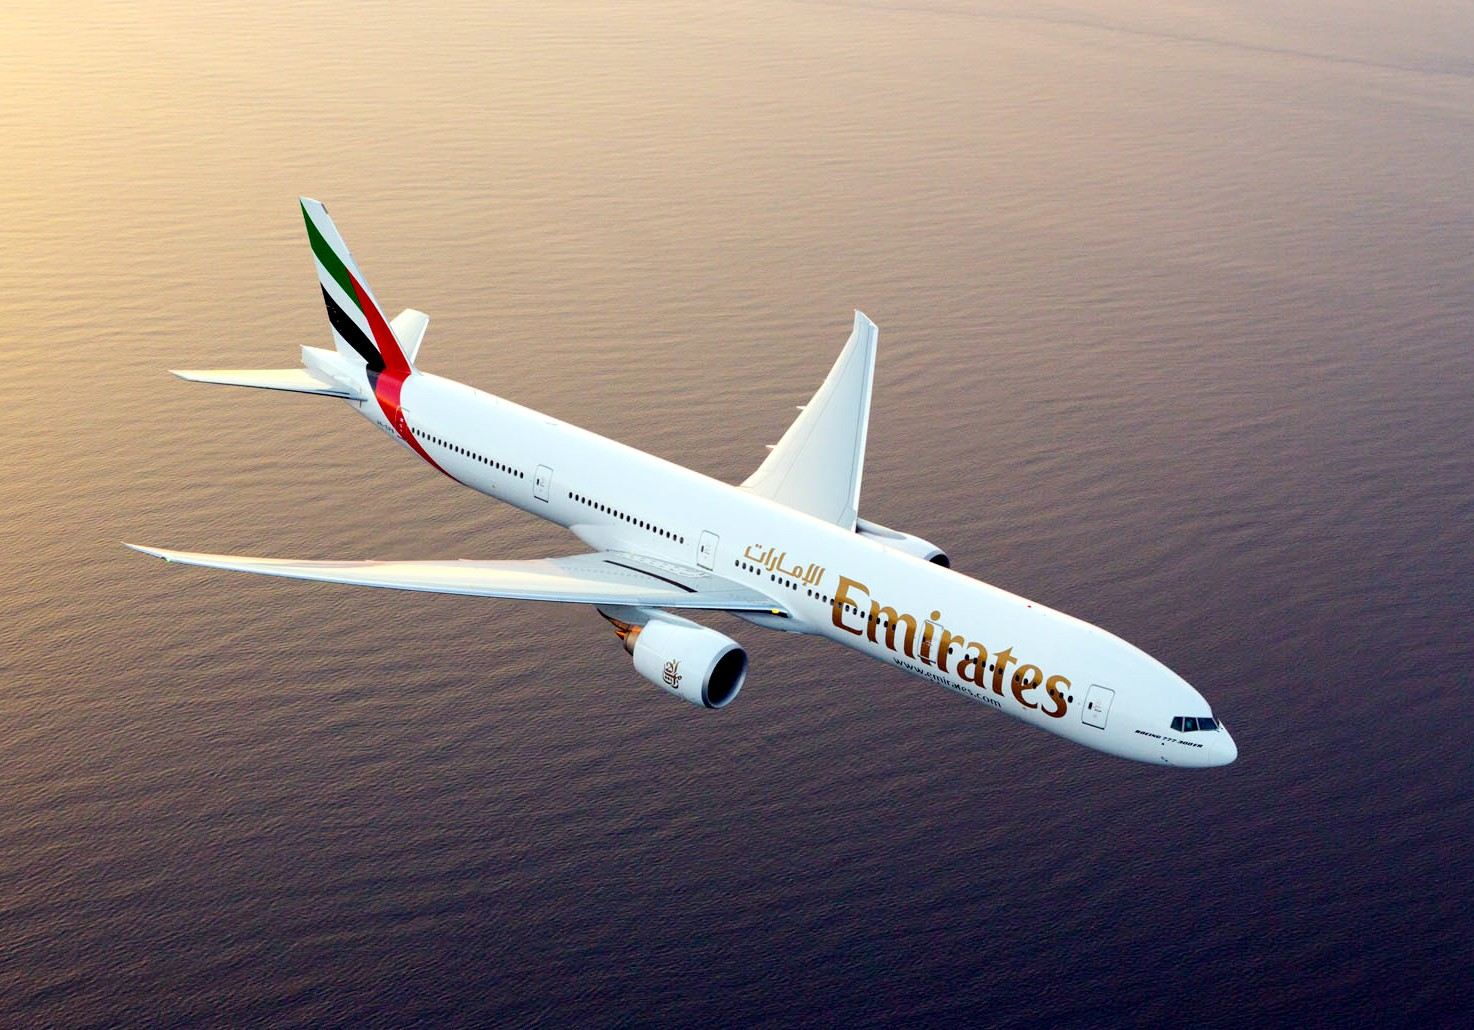 Emirates Airlines will operate flights to 8 destinations next week